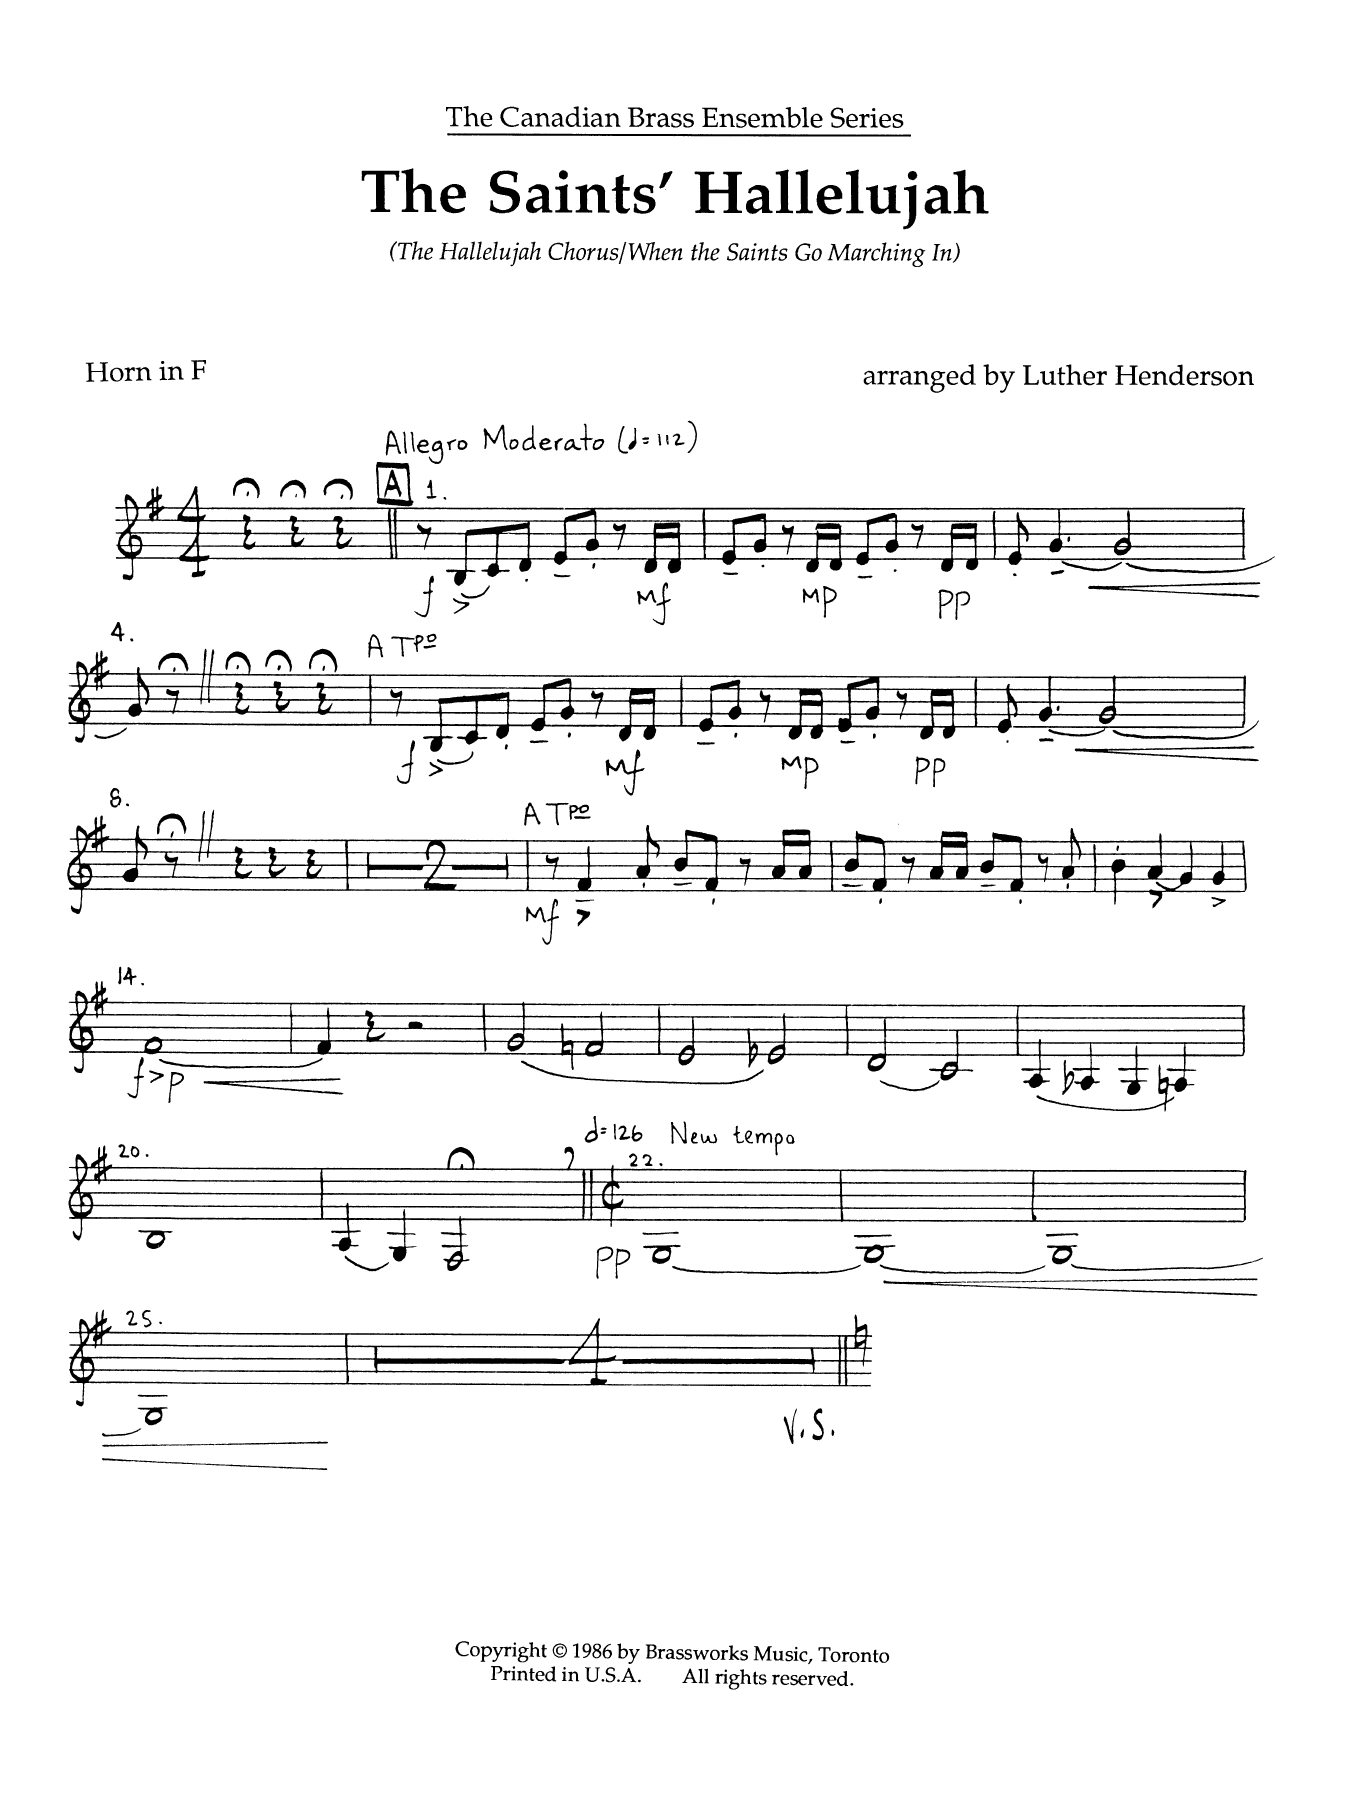 The Saints' Hallelujah - Horn in F Sheet Music